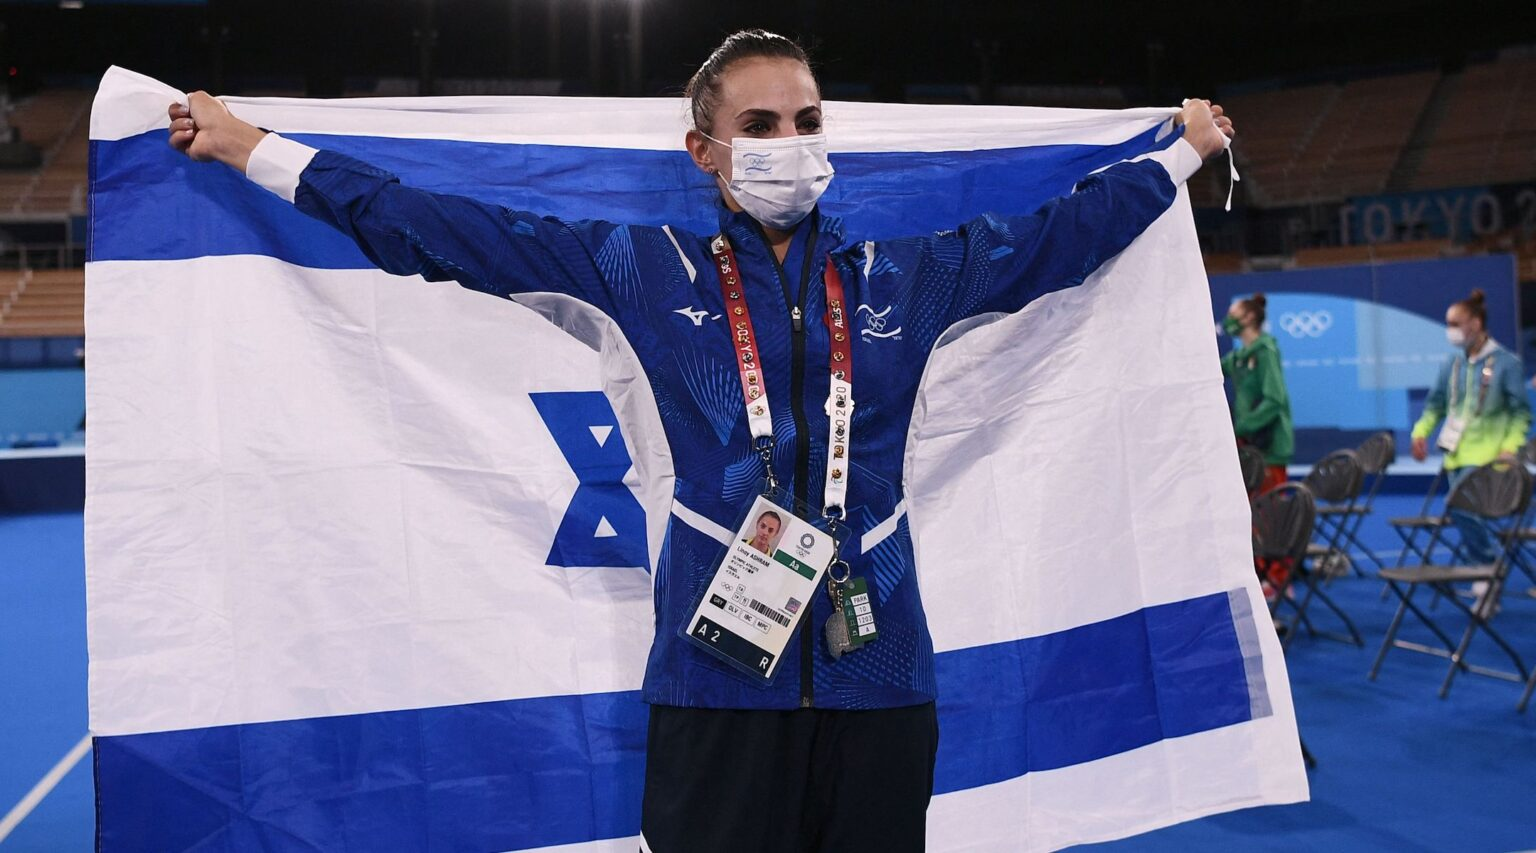 Israel's Linoy Ashram celebrates winning the individual all-around final of the Rhythmic Gymnastics event during Tokyo 2020 Olympic Games on August 7, 2021. (Photo/JTA-Lionel Bonaventure-AFP via Getty Images)